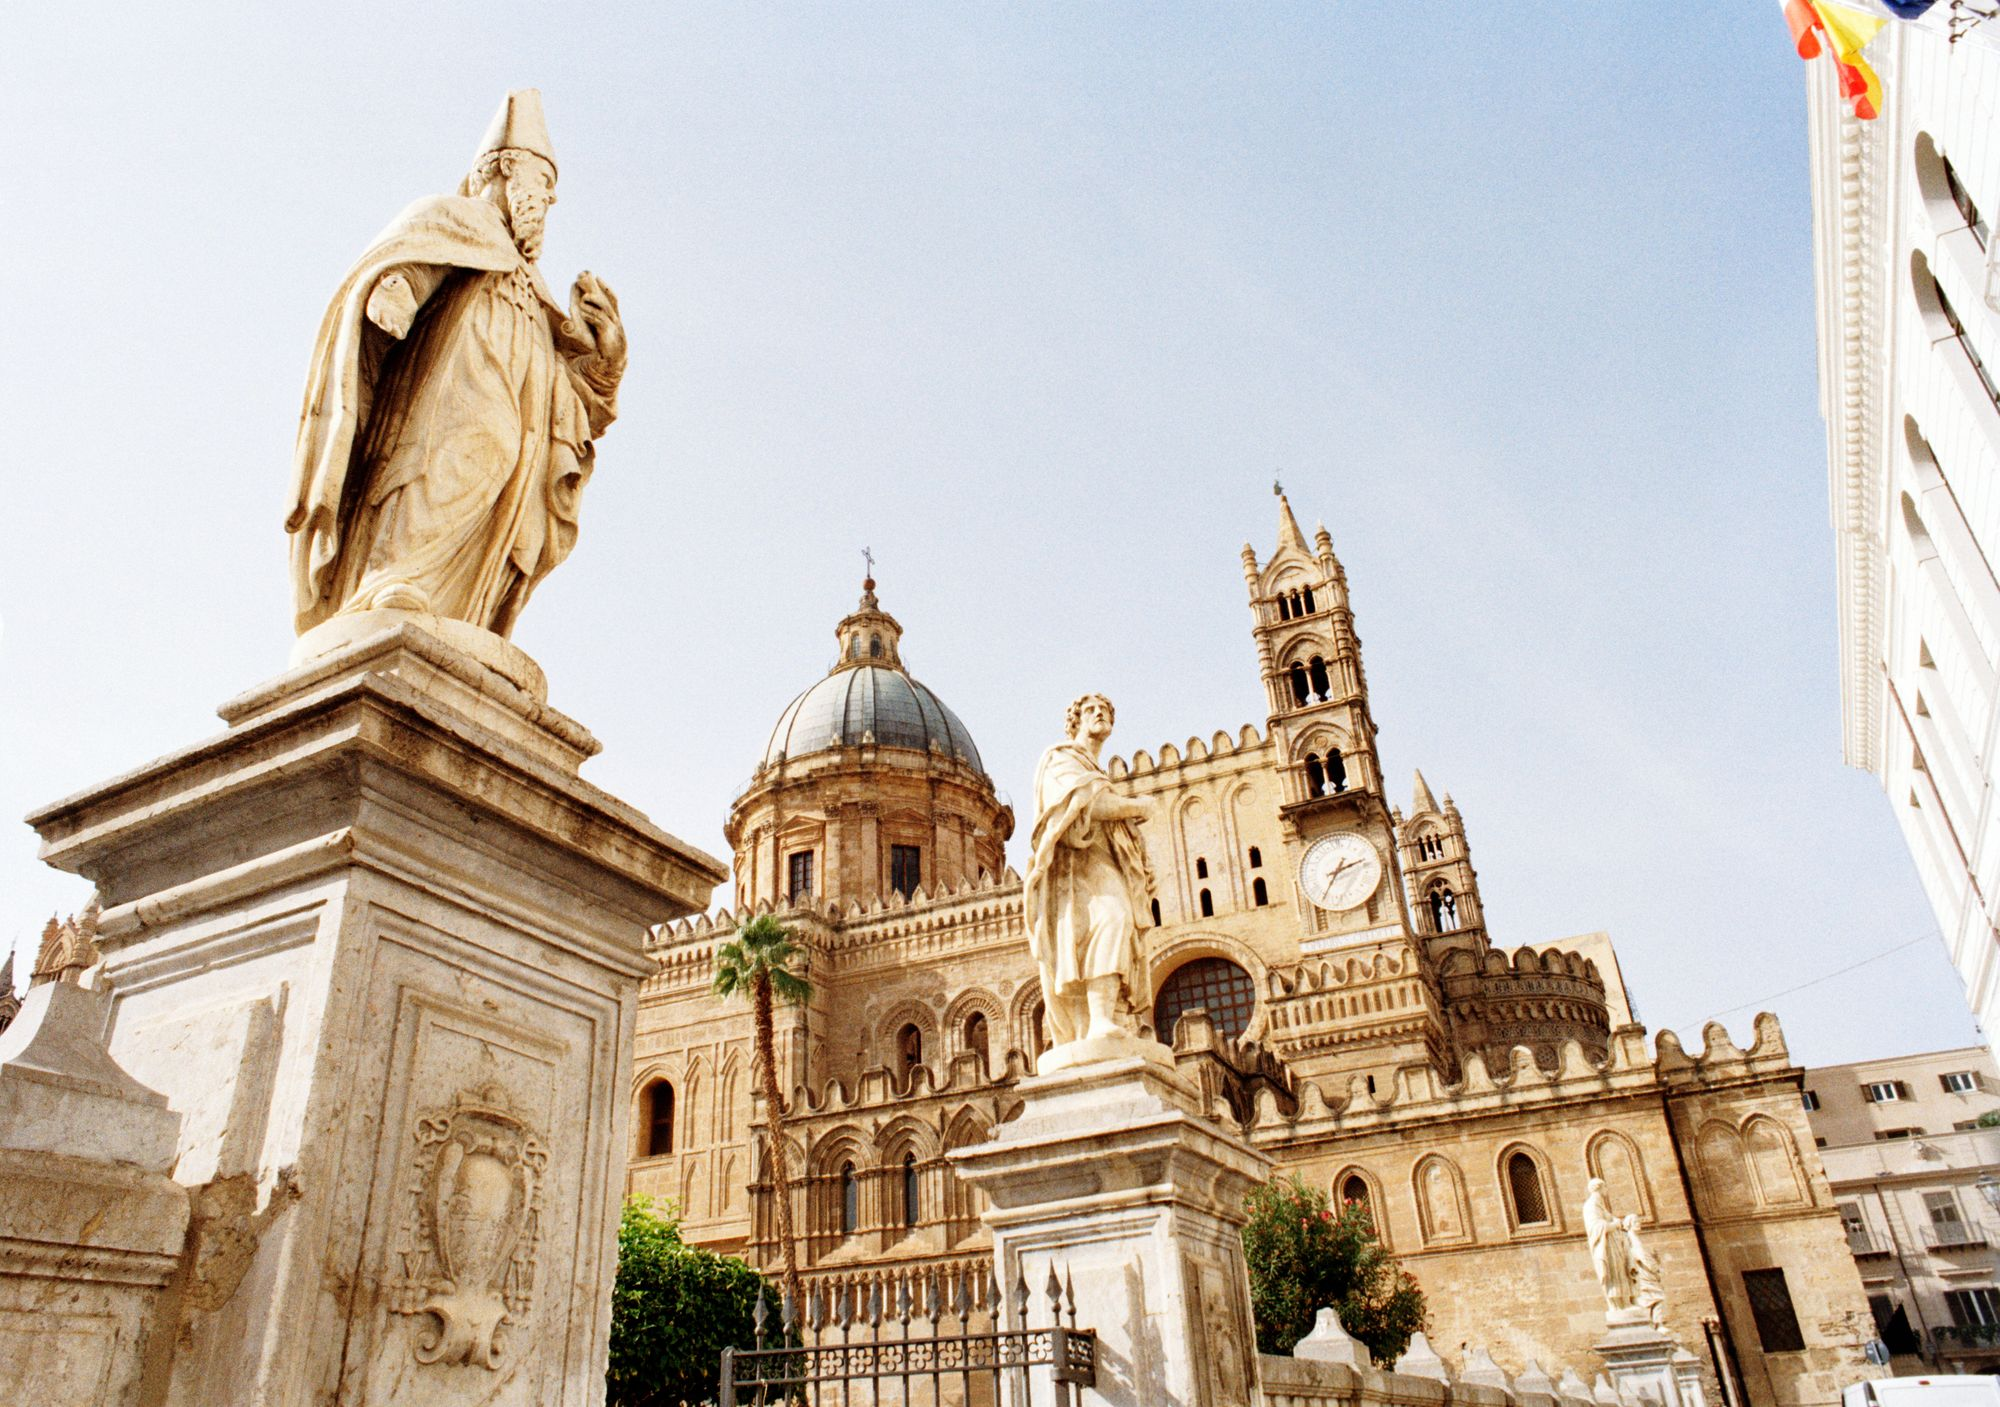 Palermo Italy Palatine Chapel Home exchange